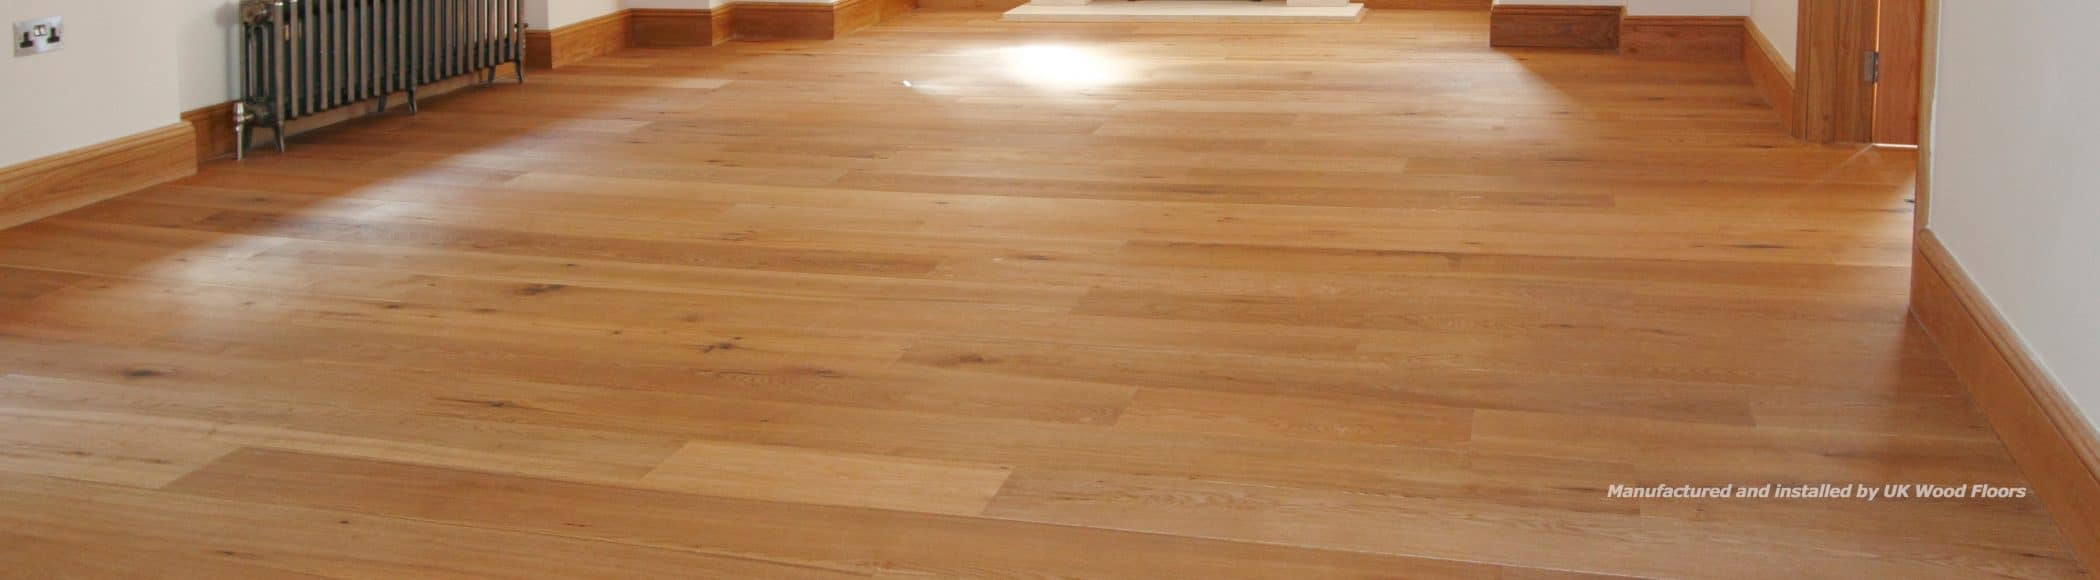 Solid Oak Rustic